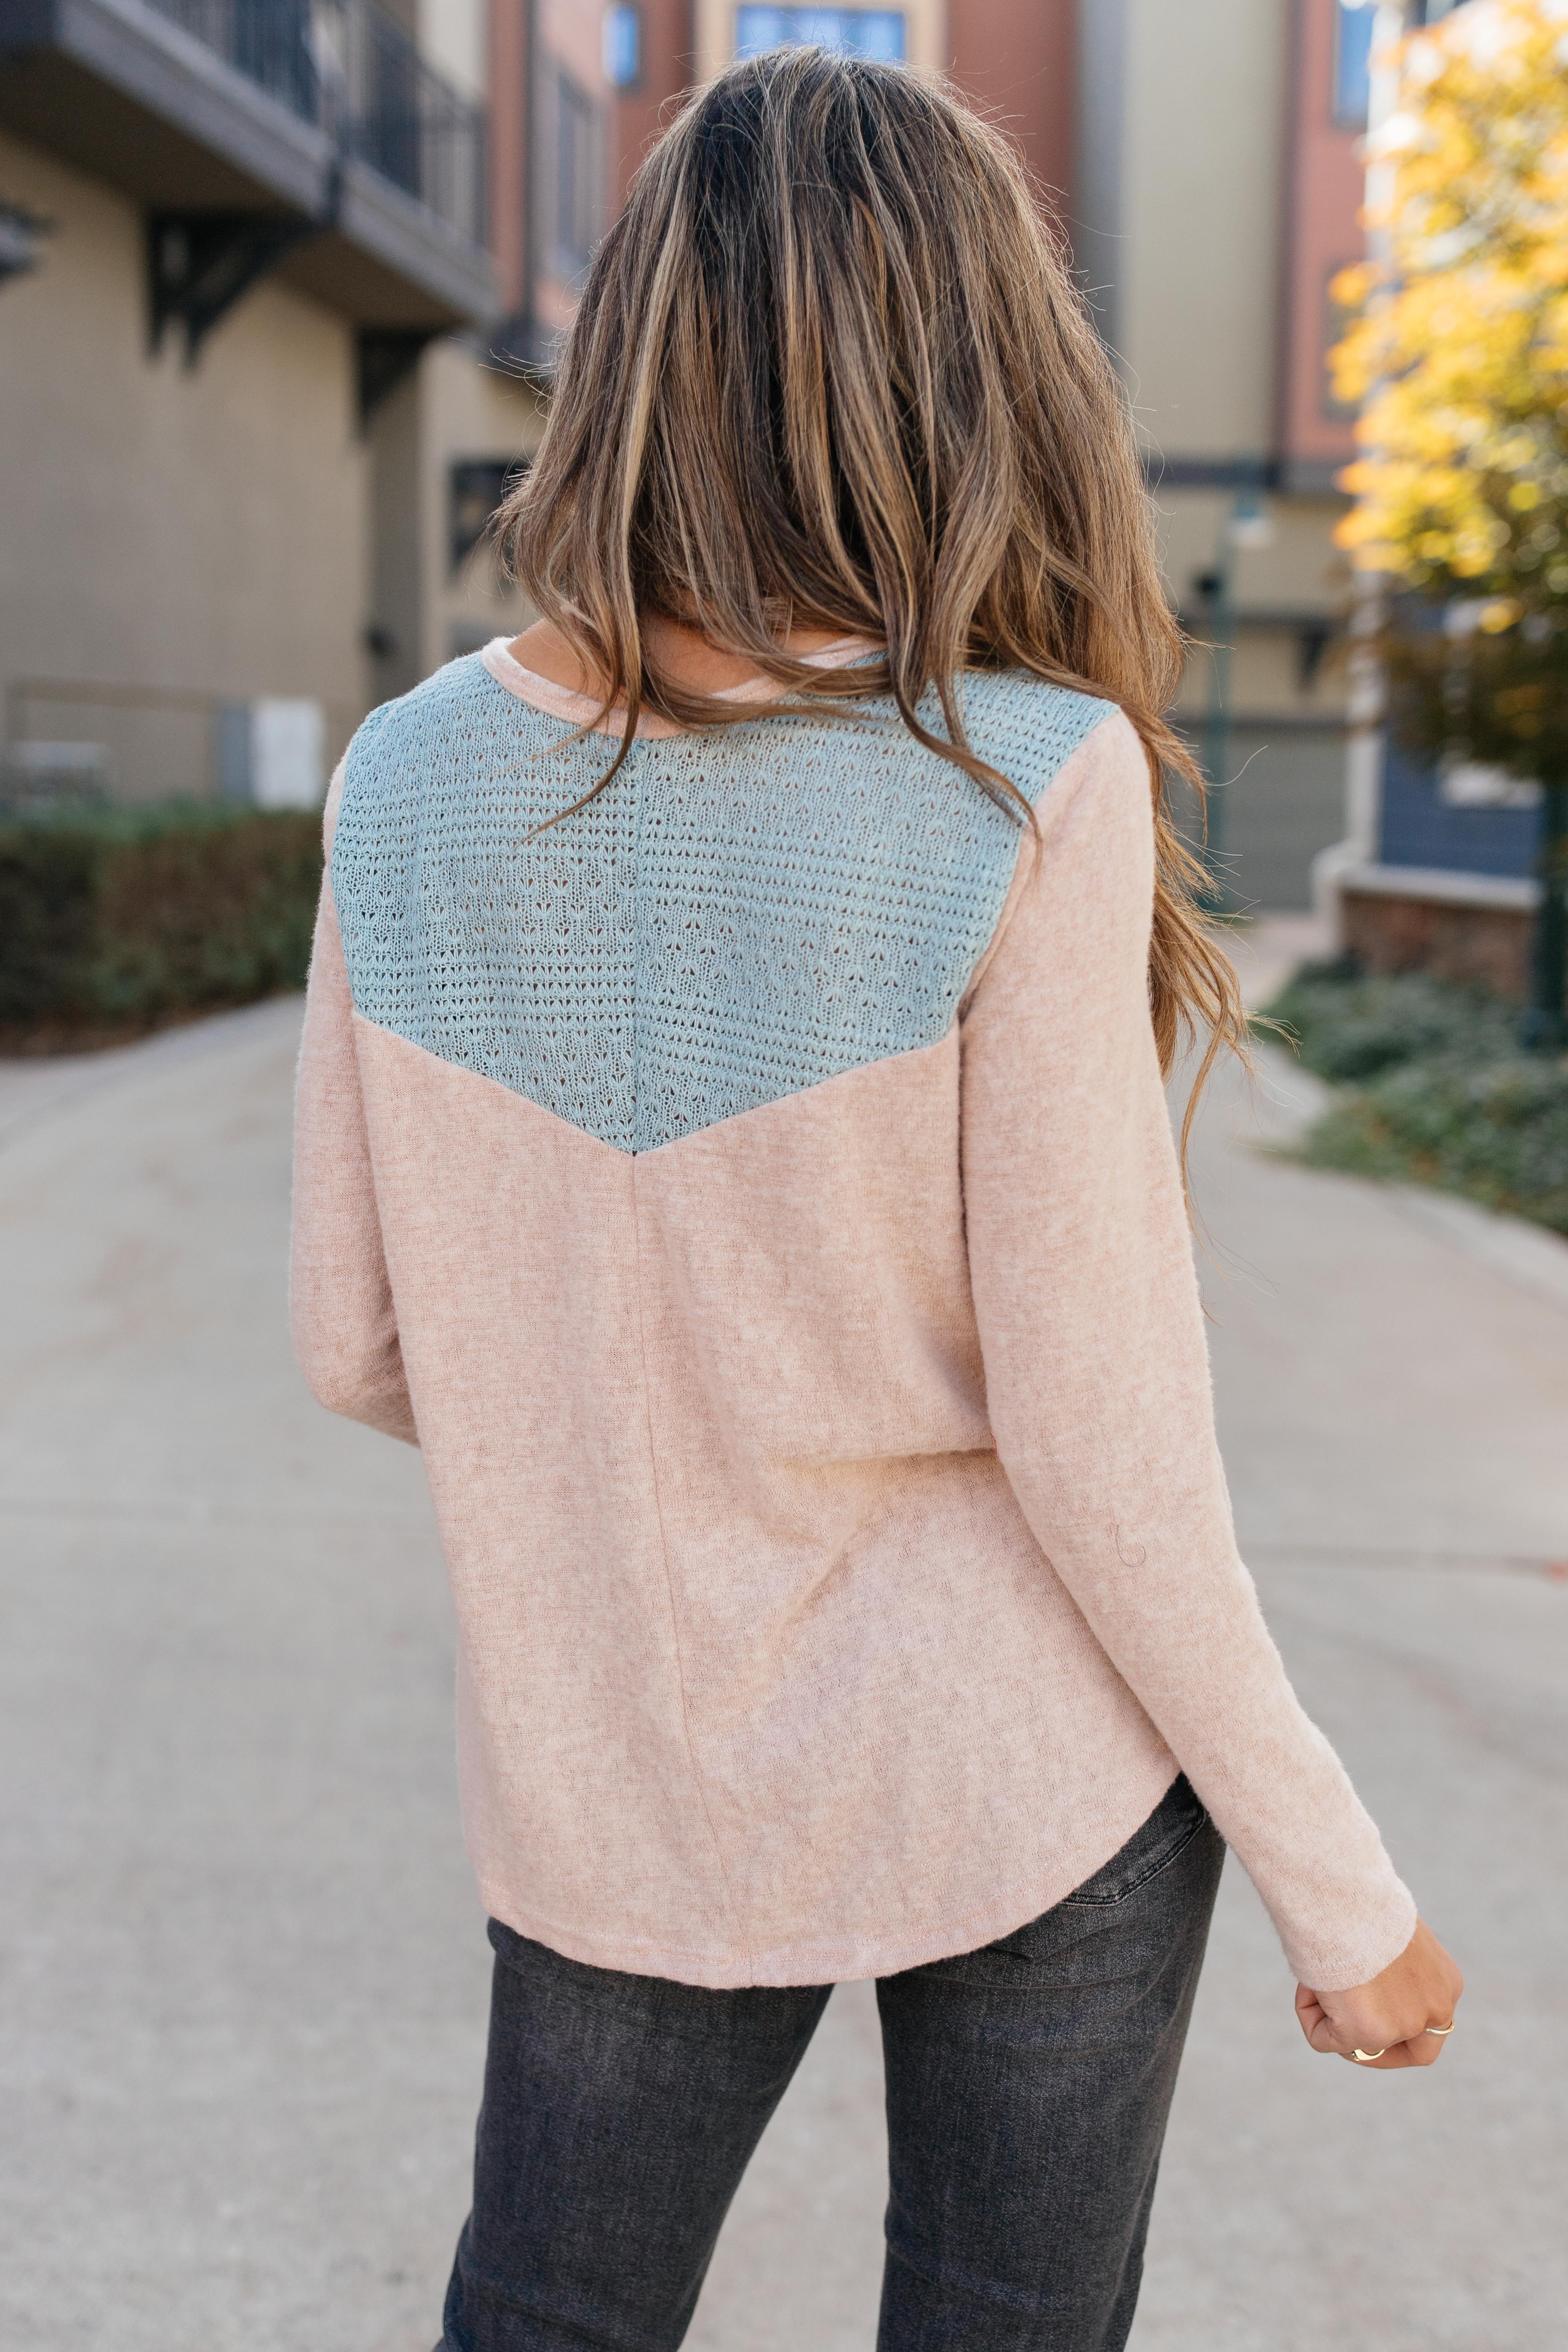 The Everything Nice Top in Pink